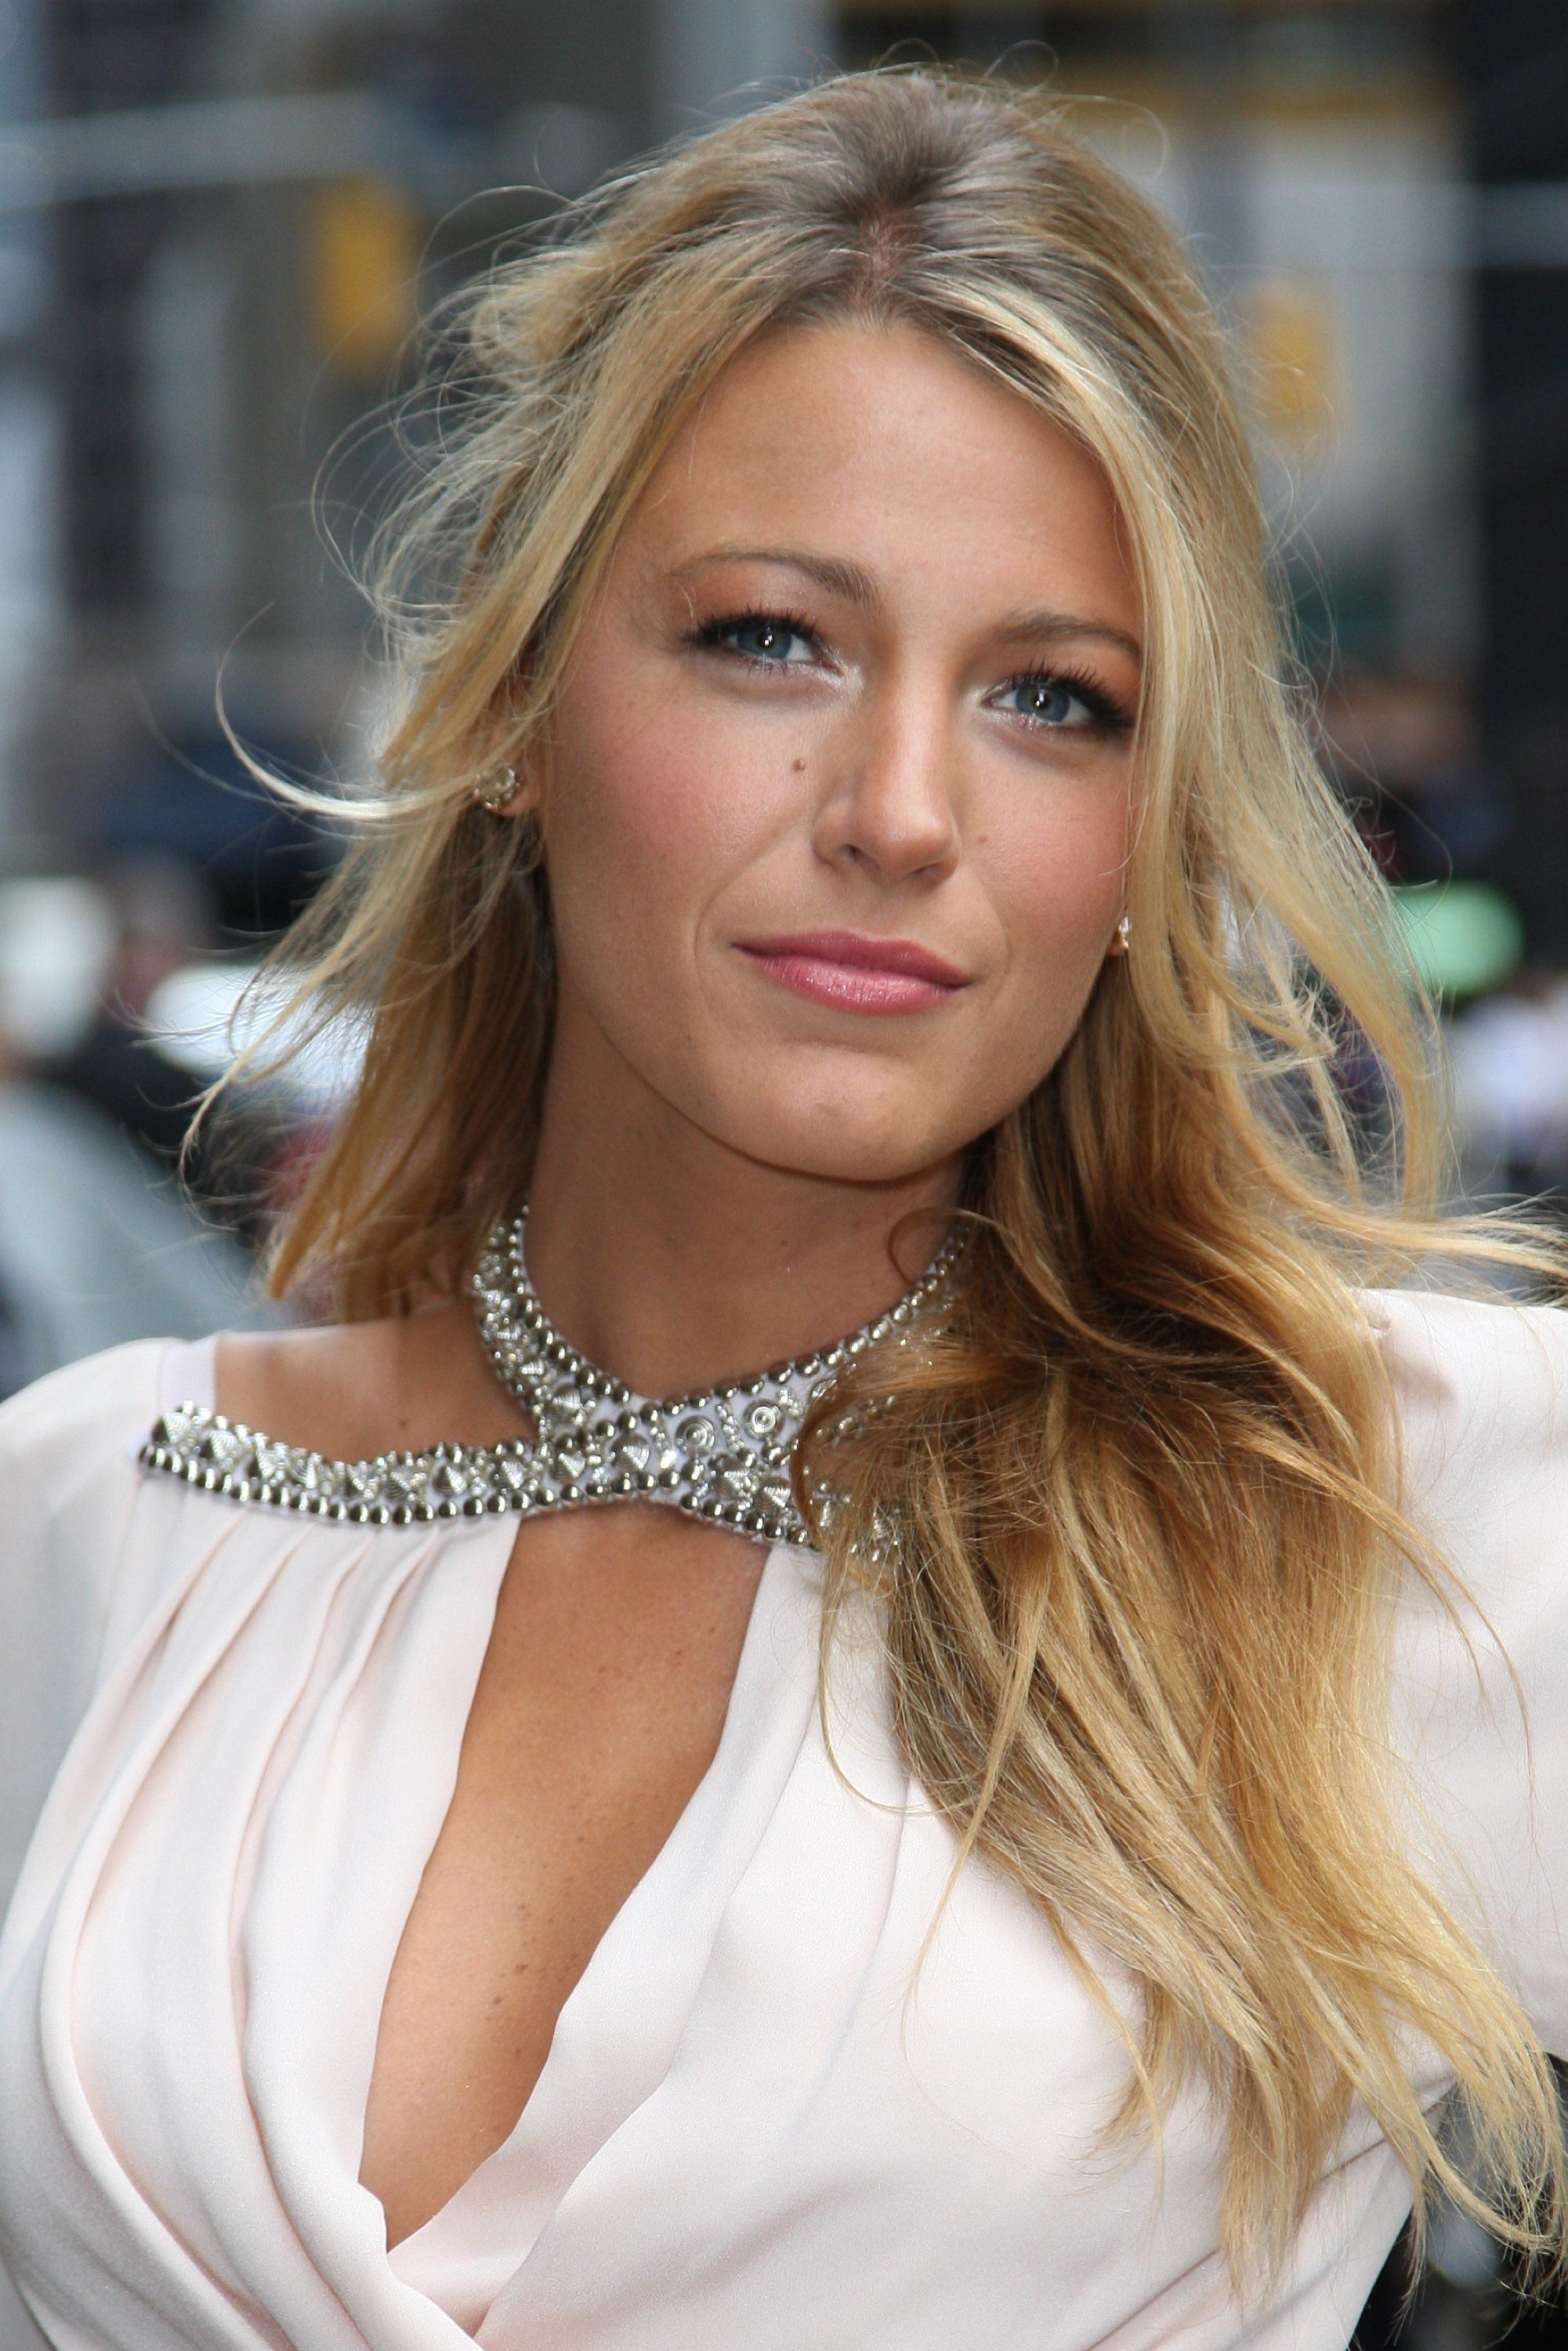 Blake Lively For Smartphone